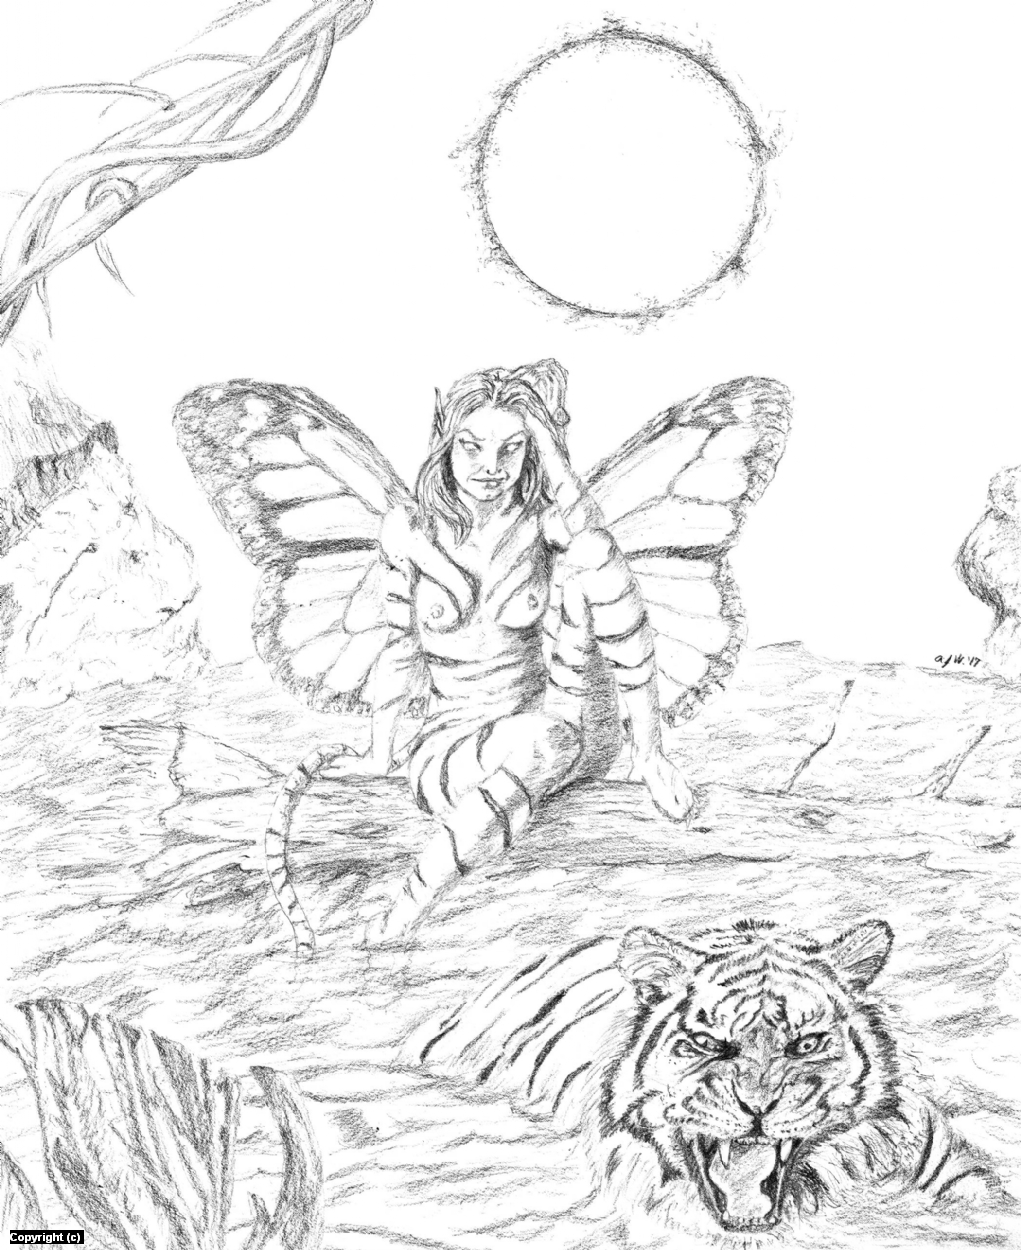 The Tiger Faerie Artwork by A. Jaye Williams